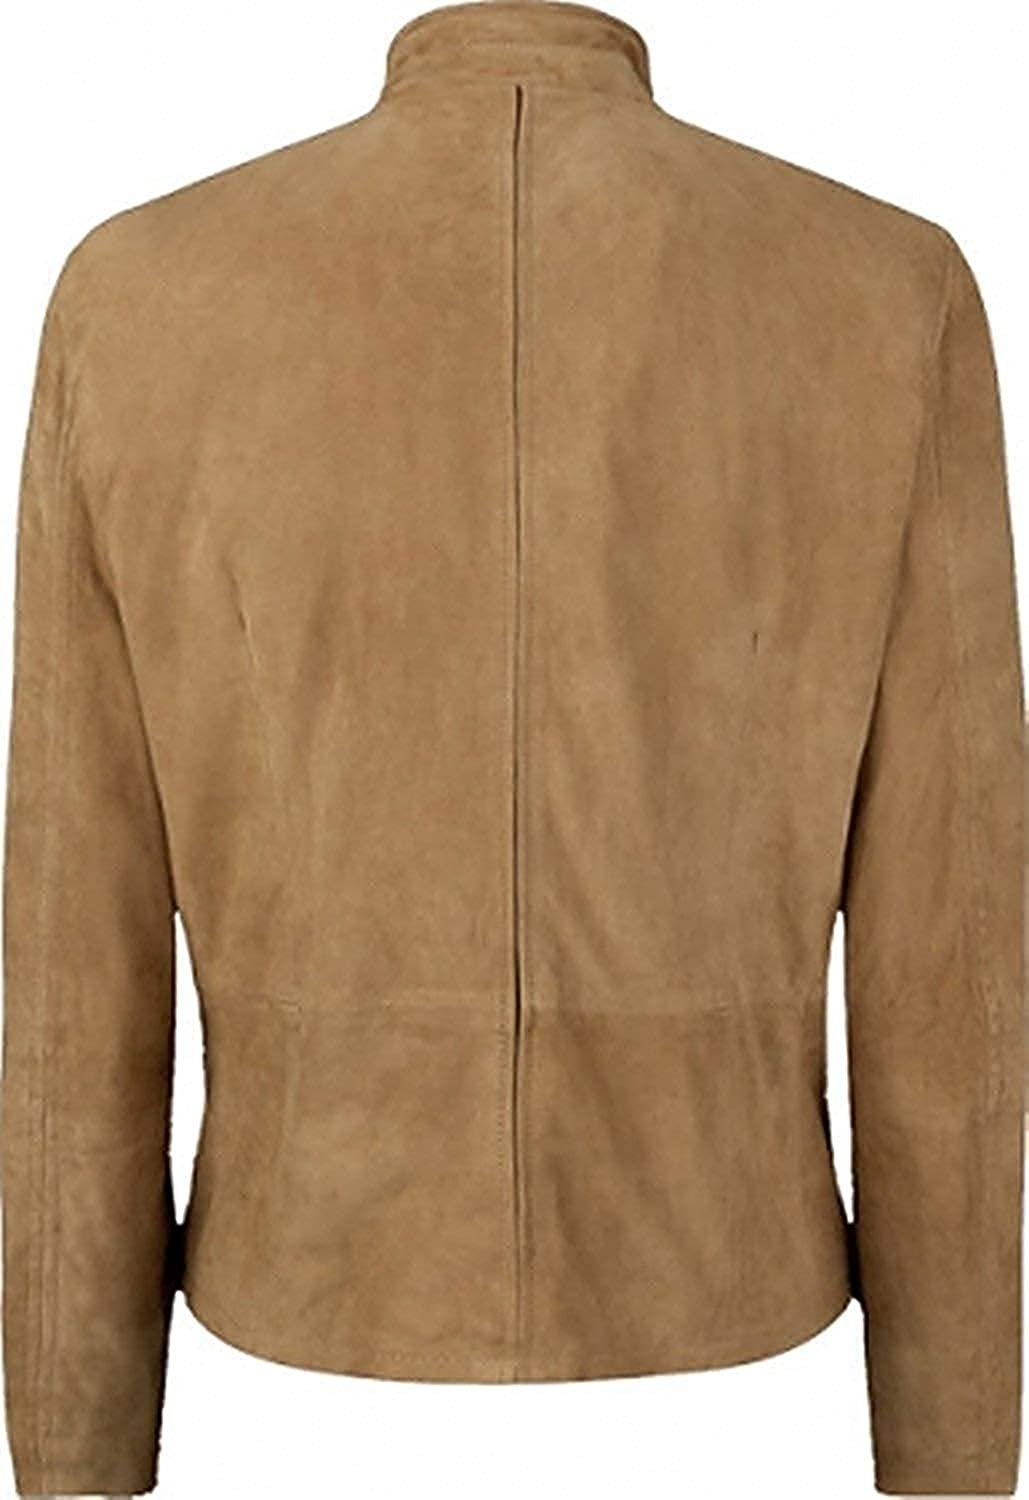 Spectr Jams nd Moroco Daneil Criag Brown Suede Leather Jacket